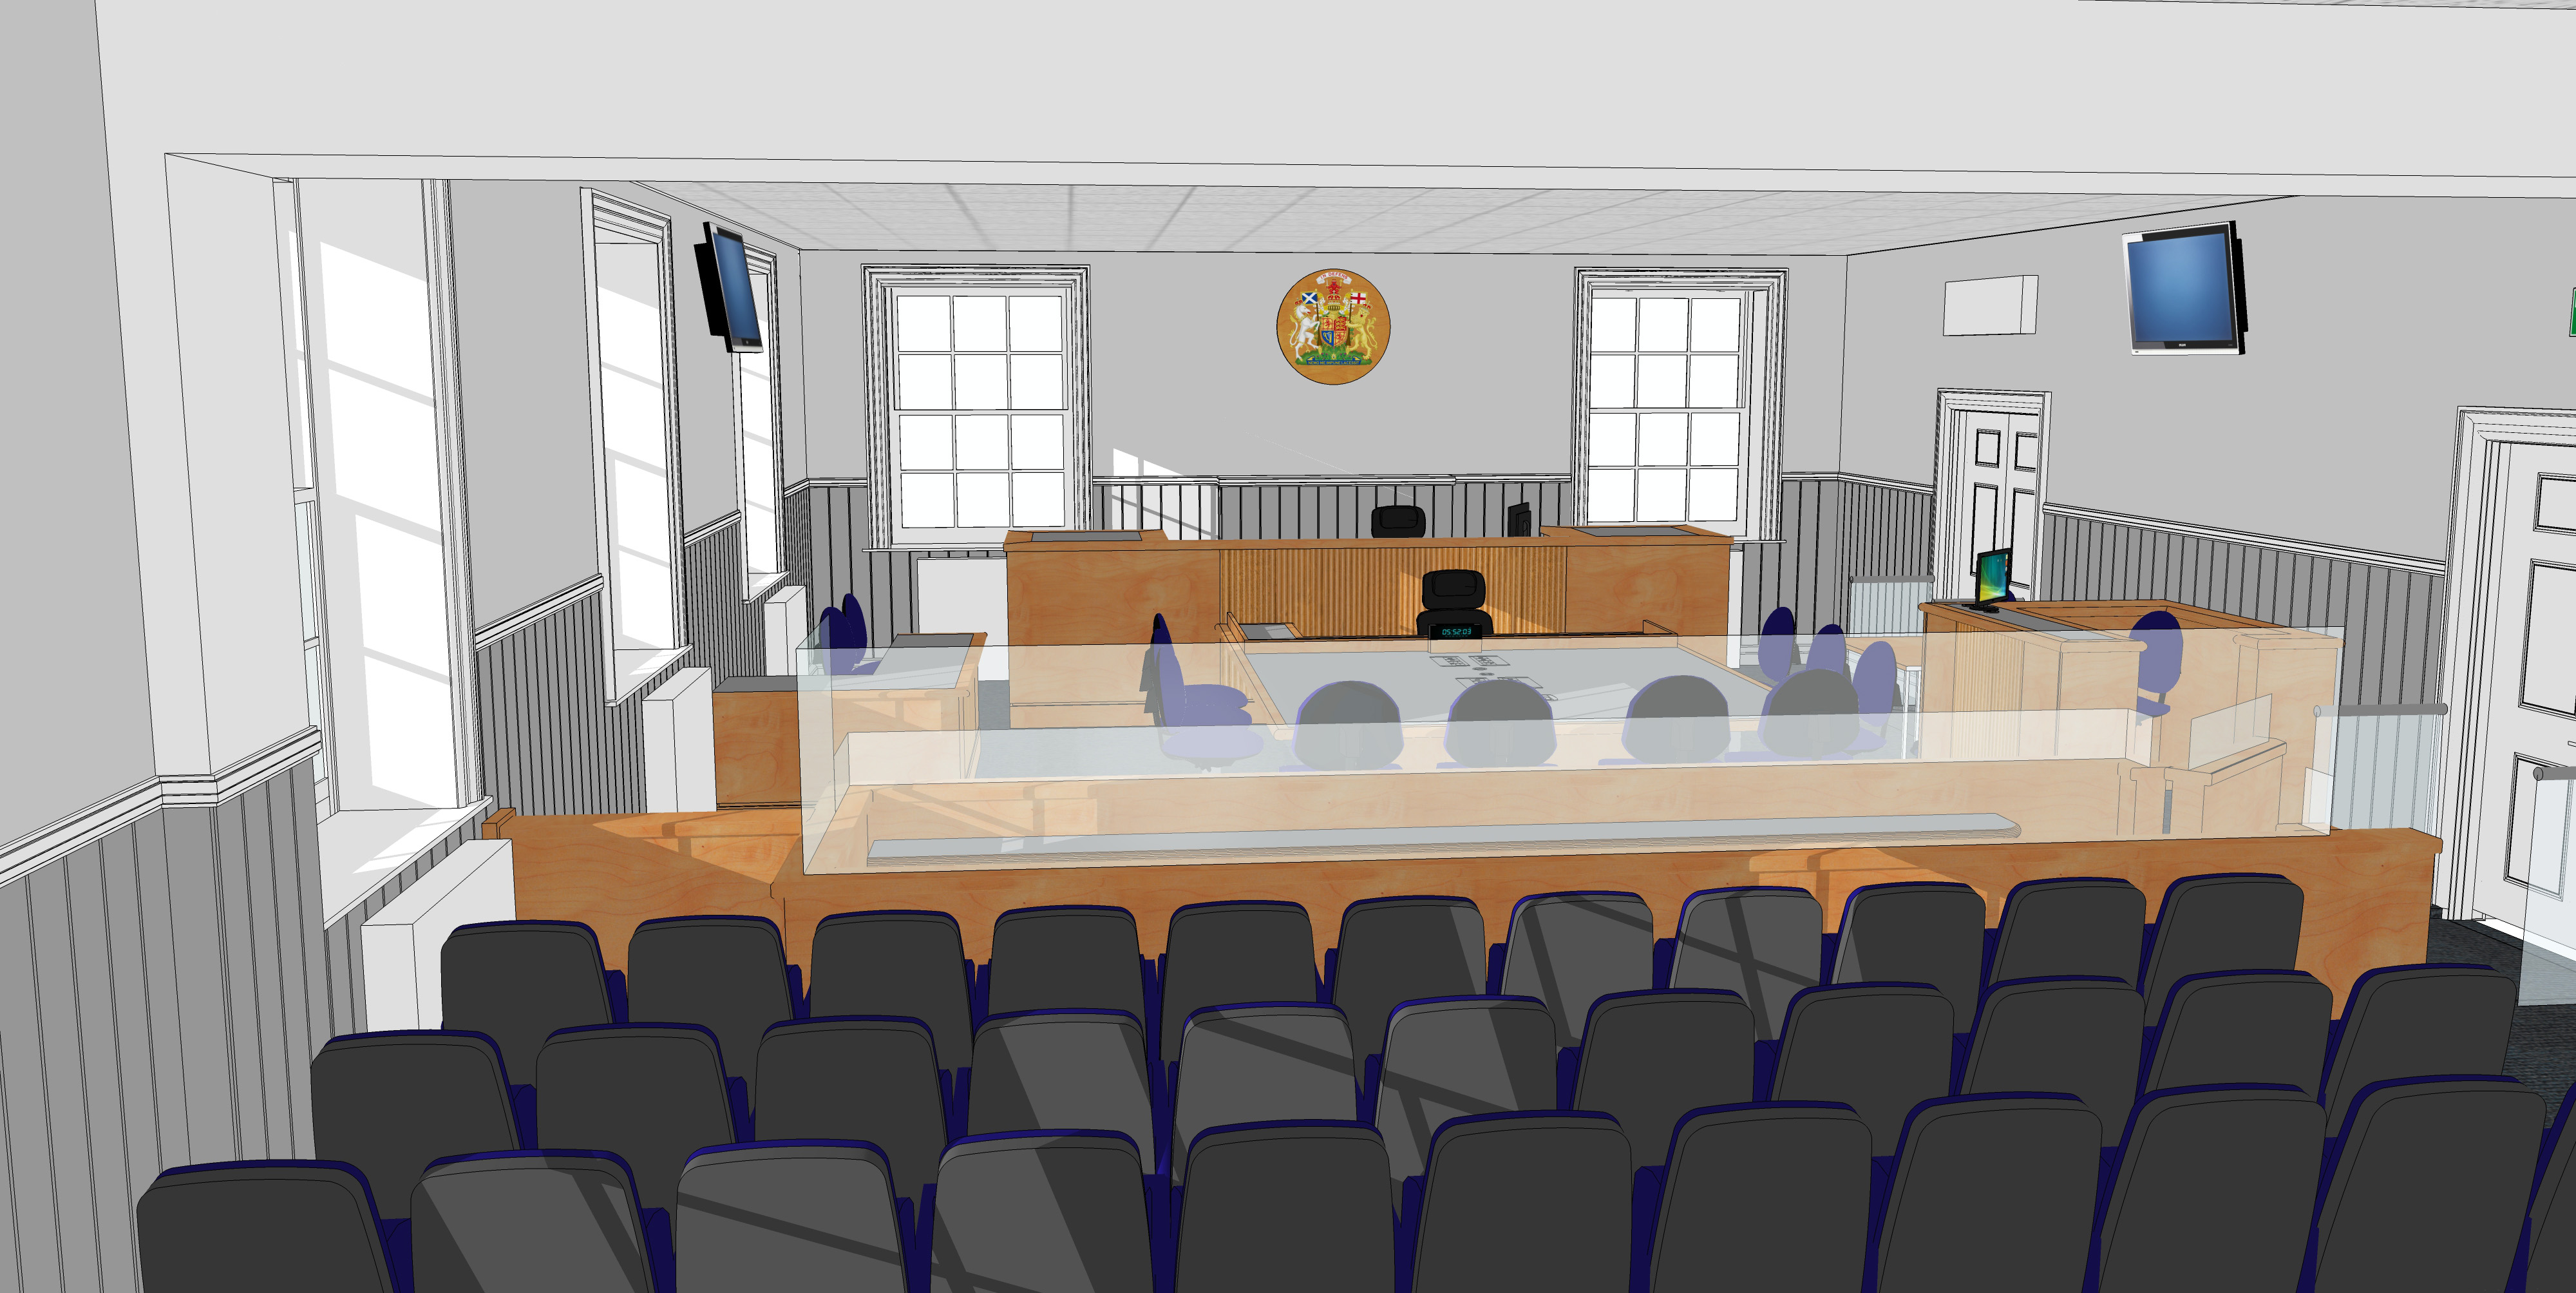 How one of the new courtrooms will look.